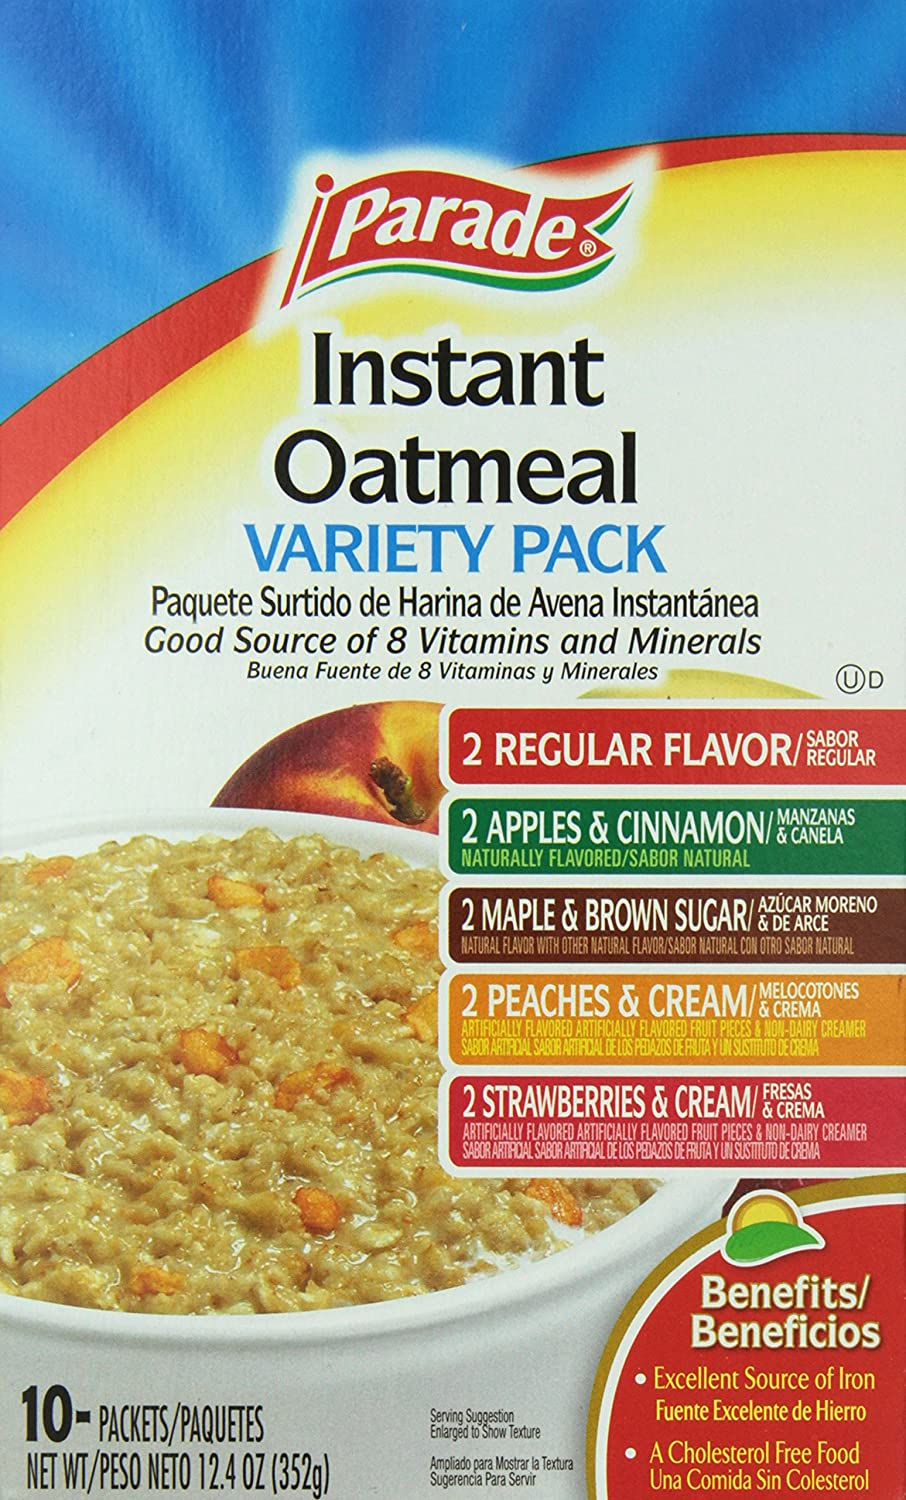 Parade instant Oatmeal Variety Pack, 10 Packets, 12.5 Ounce